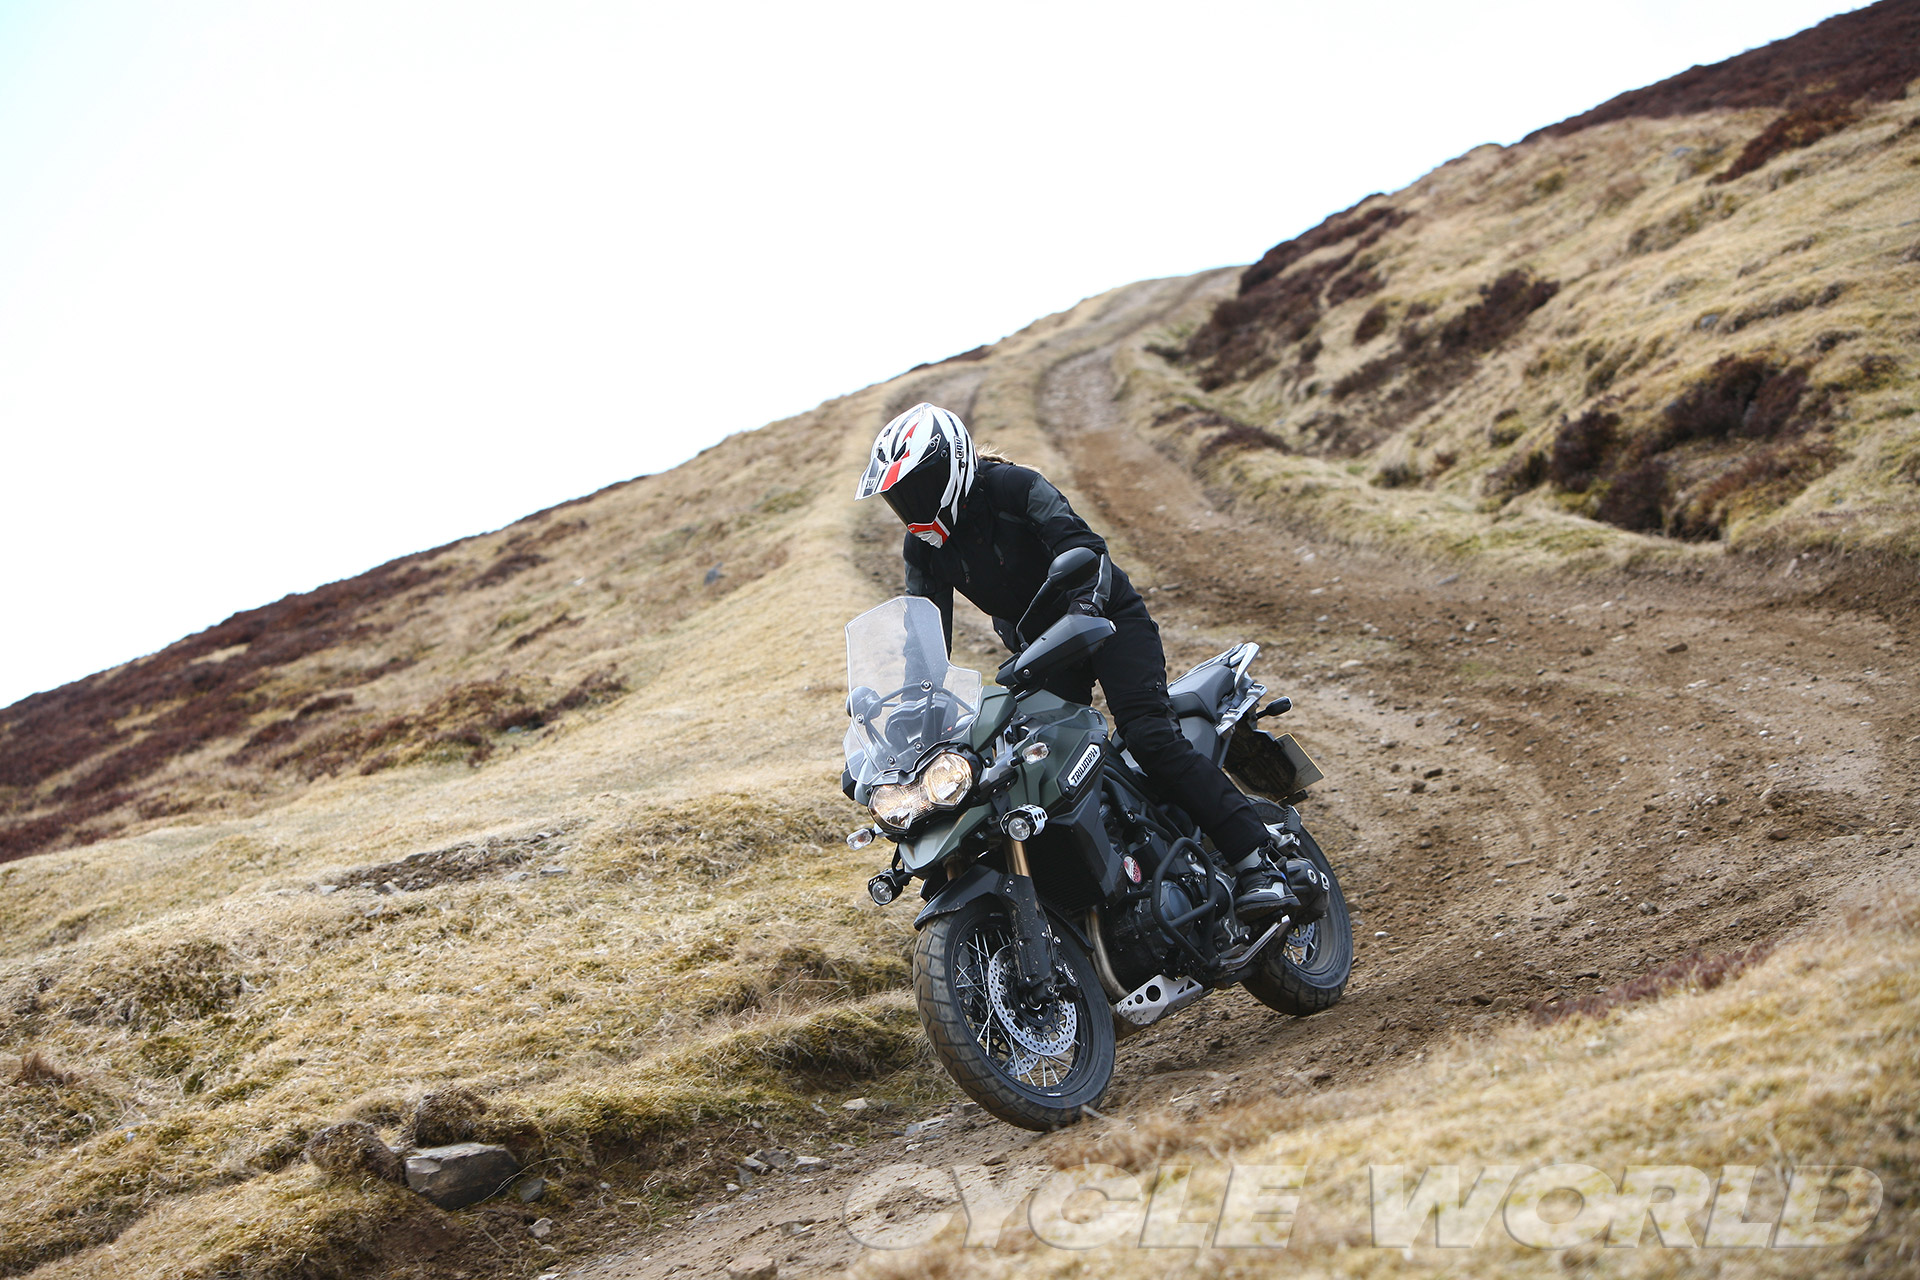 Auto and Cycle 2014 TRIUMPH EXPLORER XC – FIRST RIDE